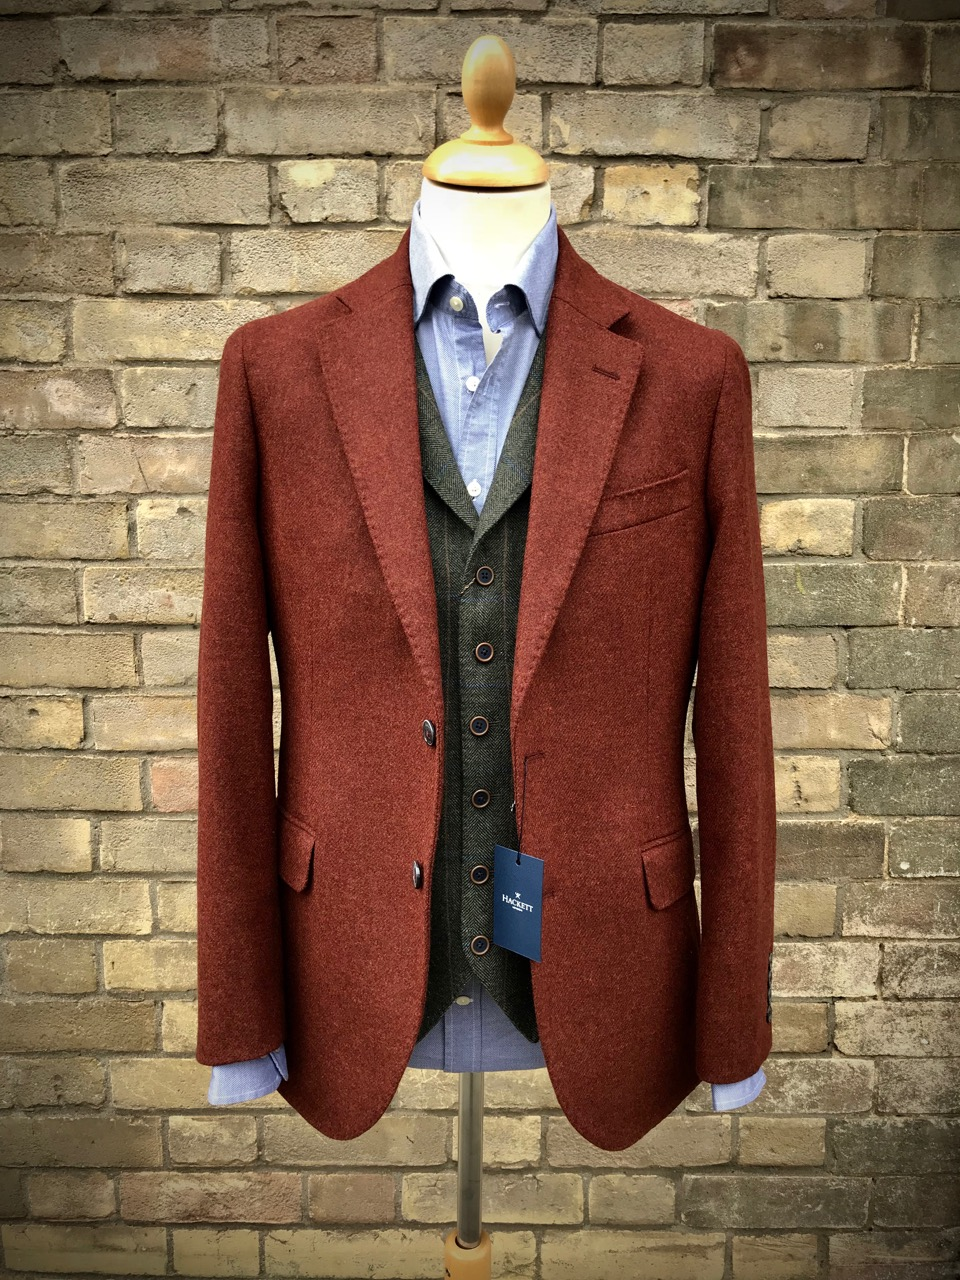 Hackett Jacket, MaGee Waistcoat and Hackett Shirt.